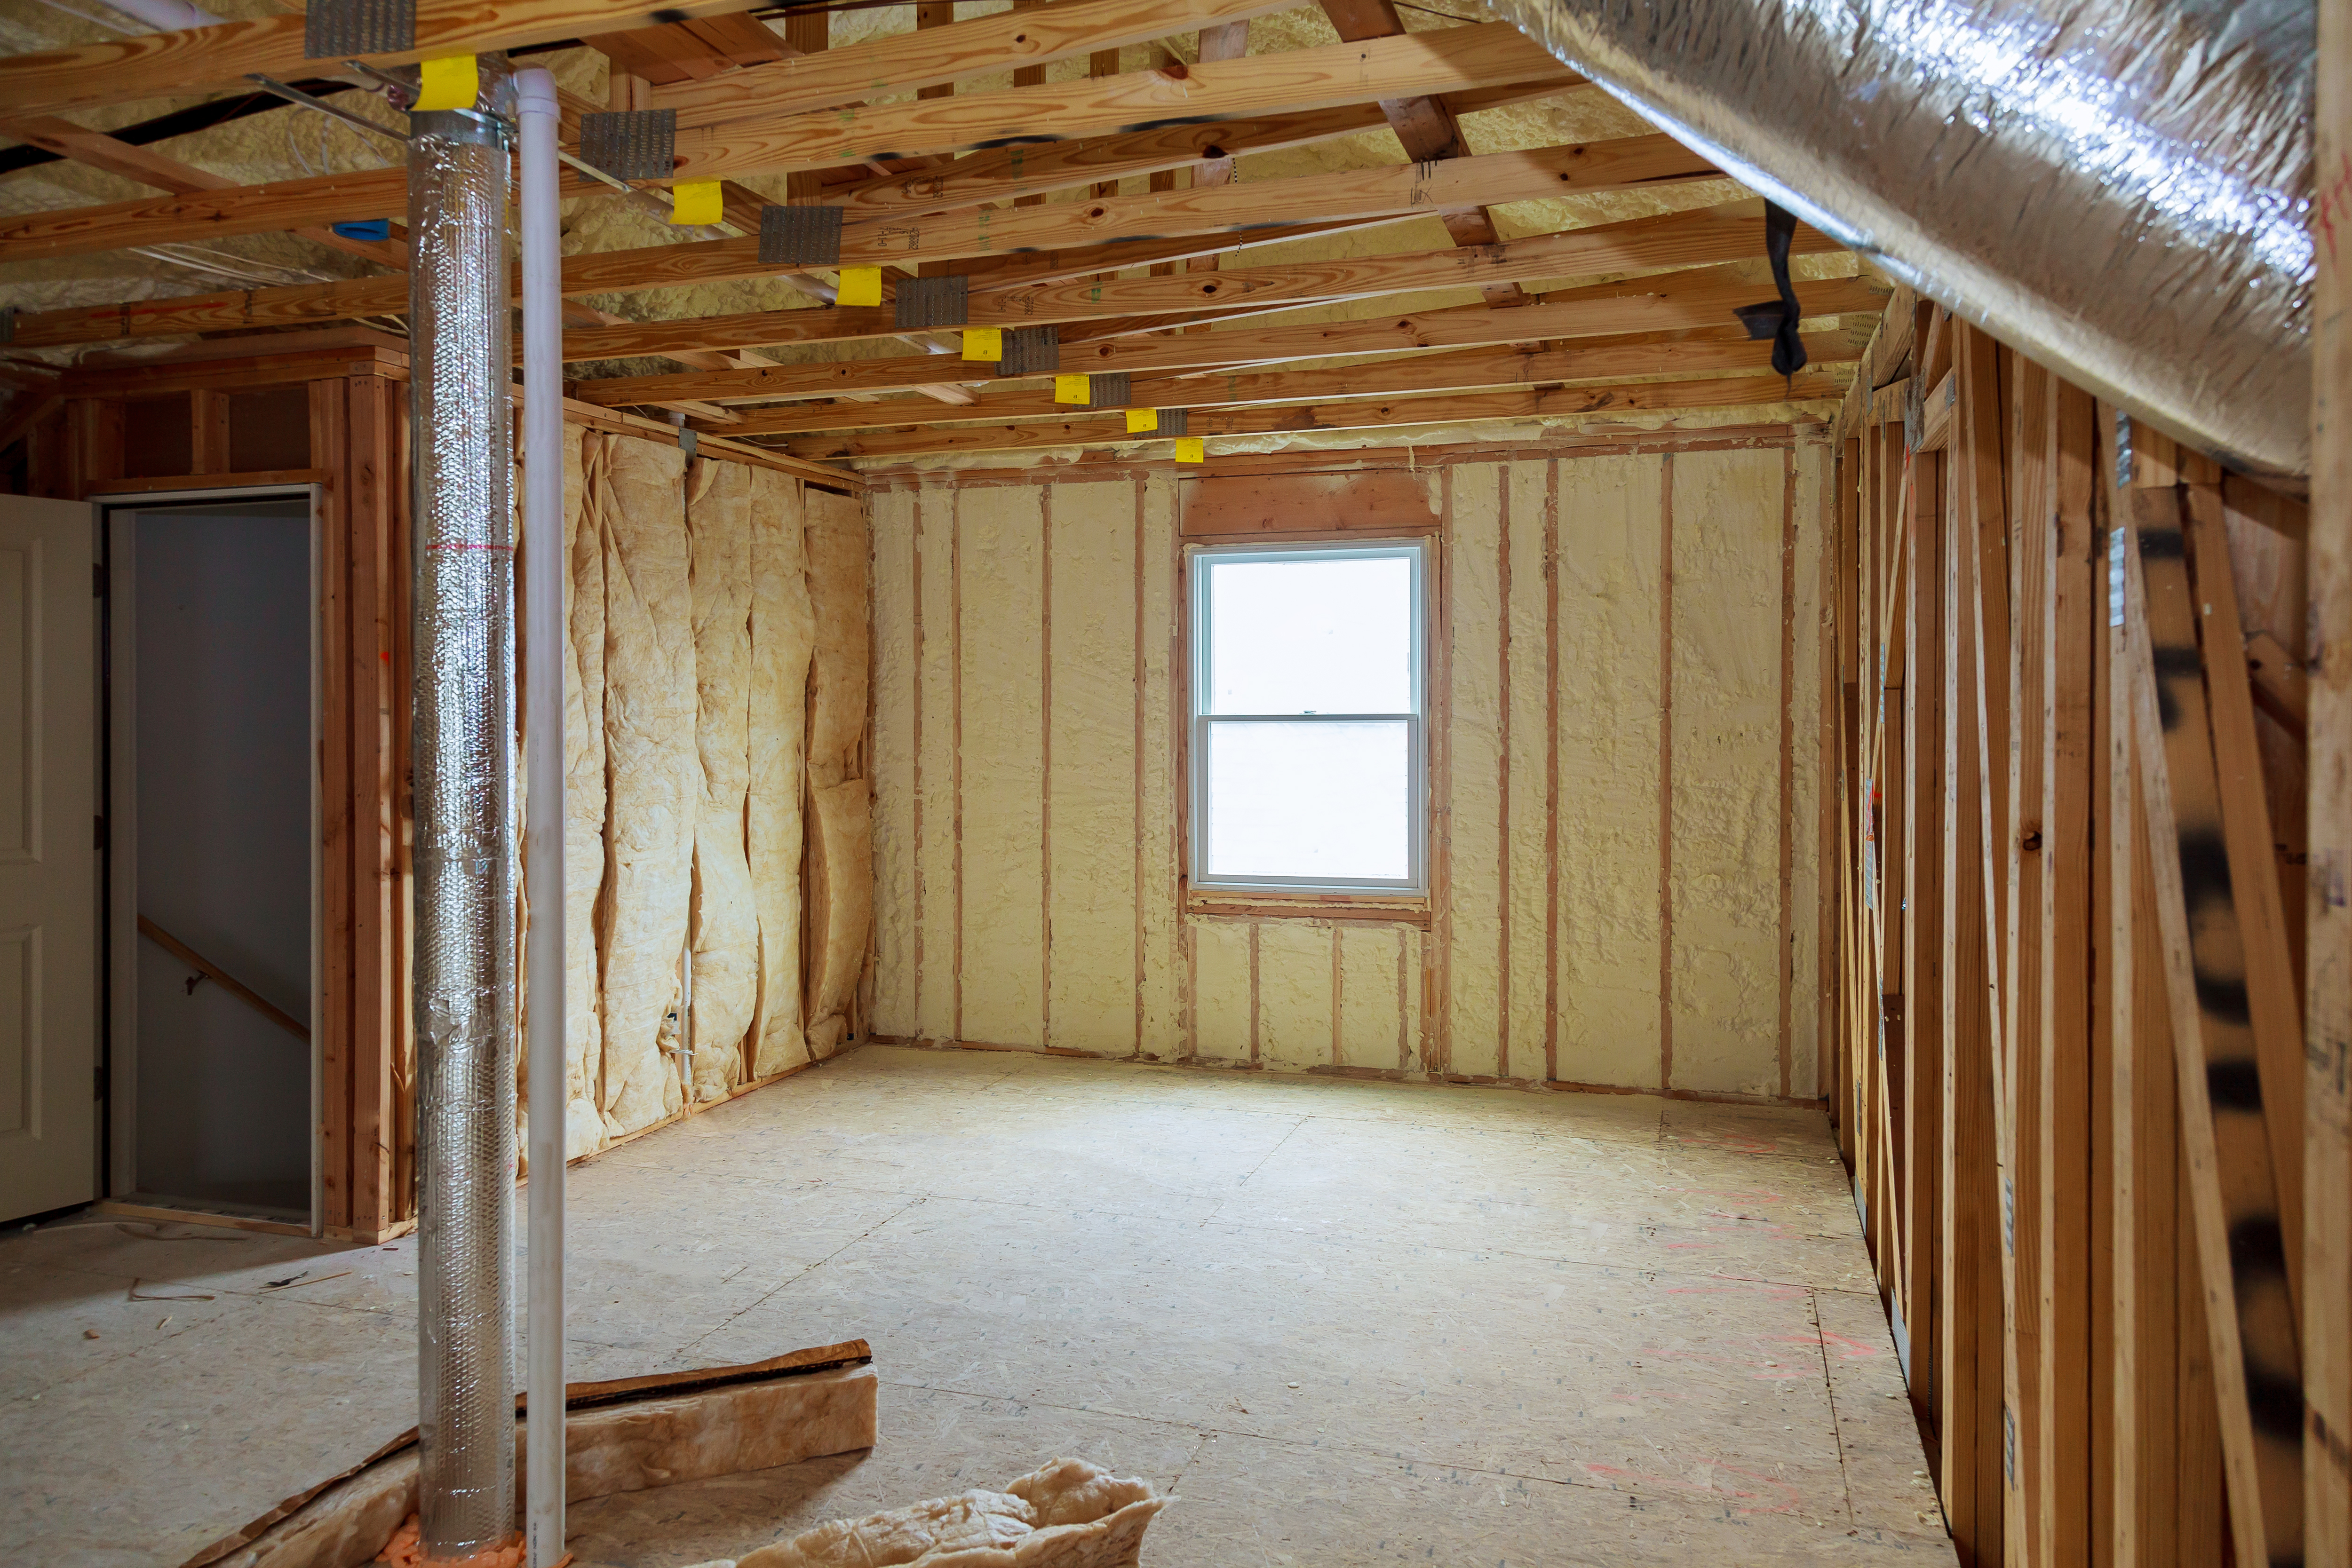 How to Check a Leaking Duct in the Attic | Home Guides | SF Gate